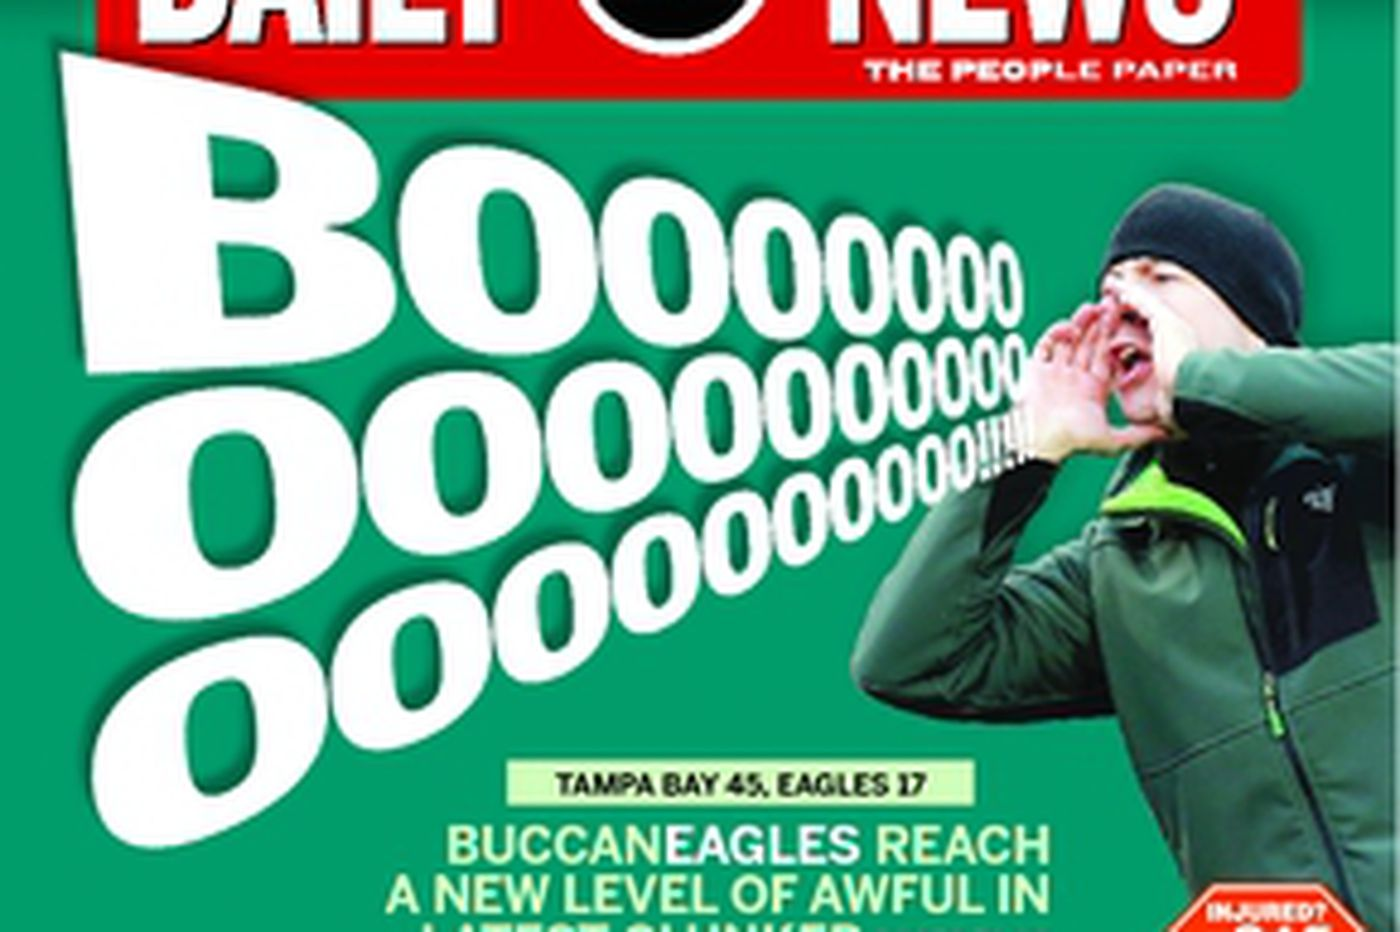 Dailynews Monthly Covers 11/23/15